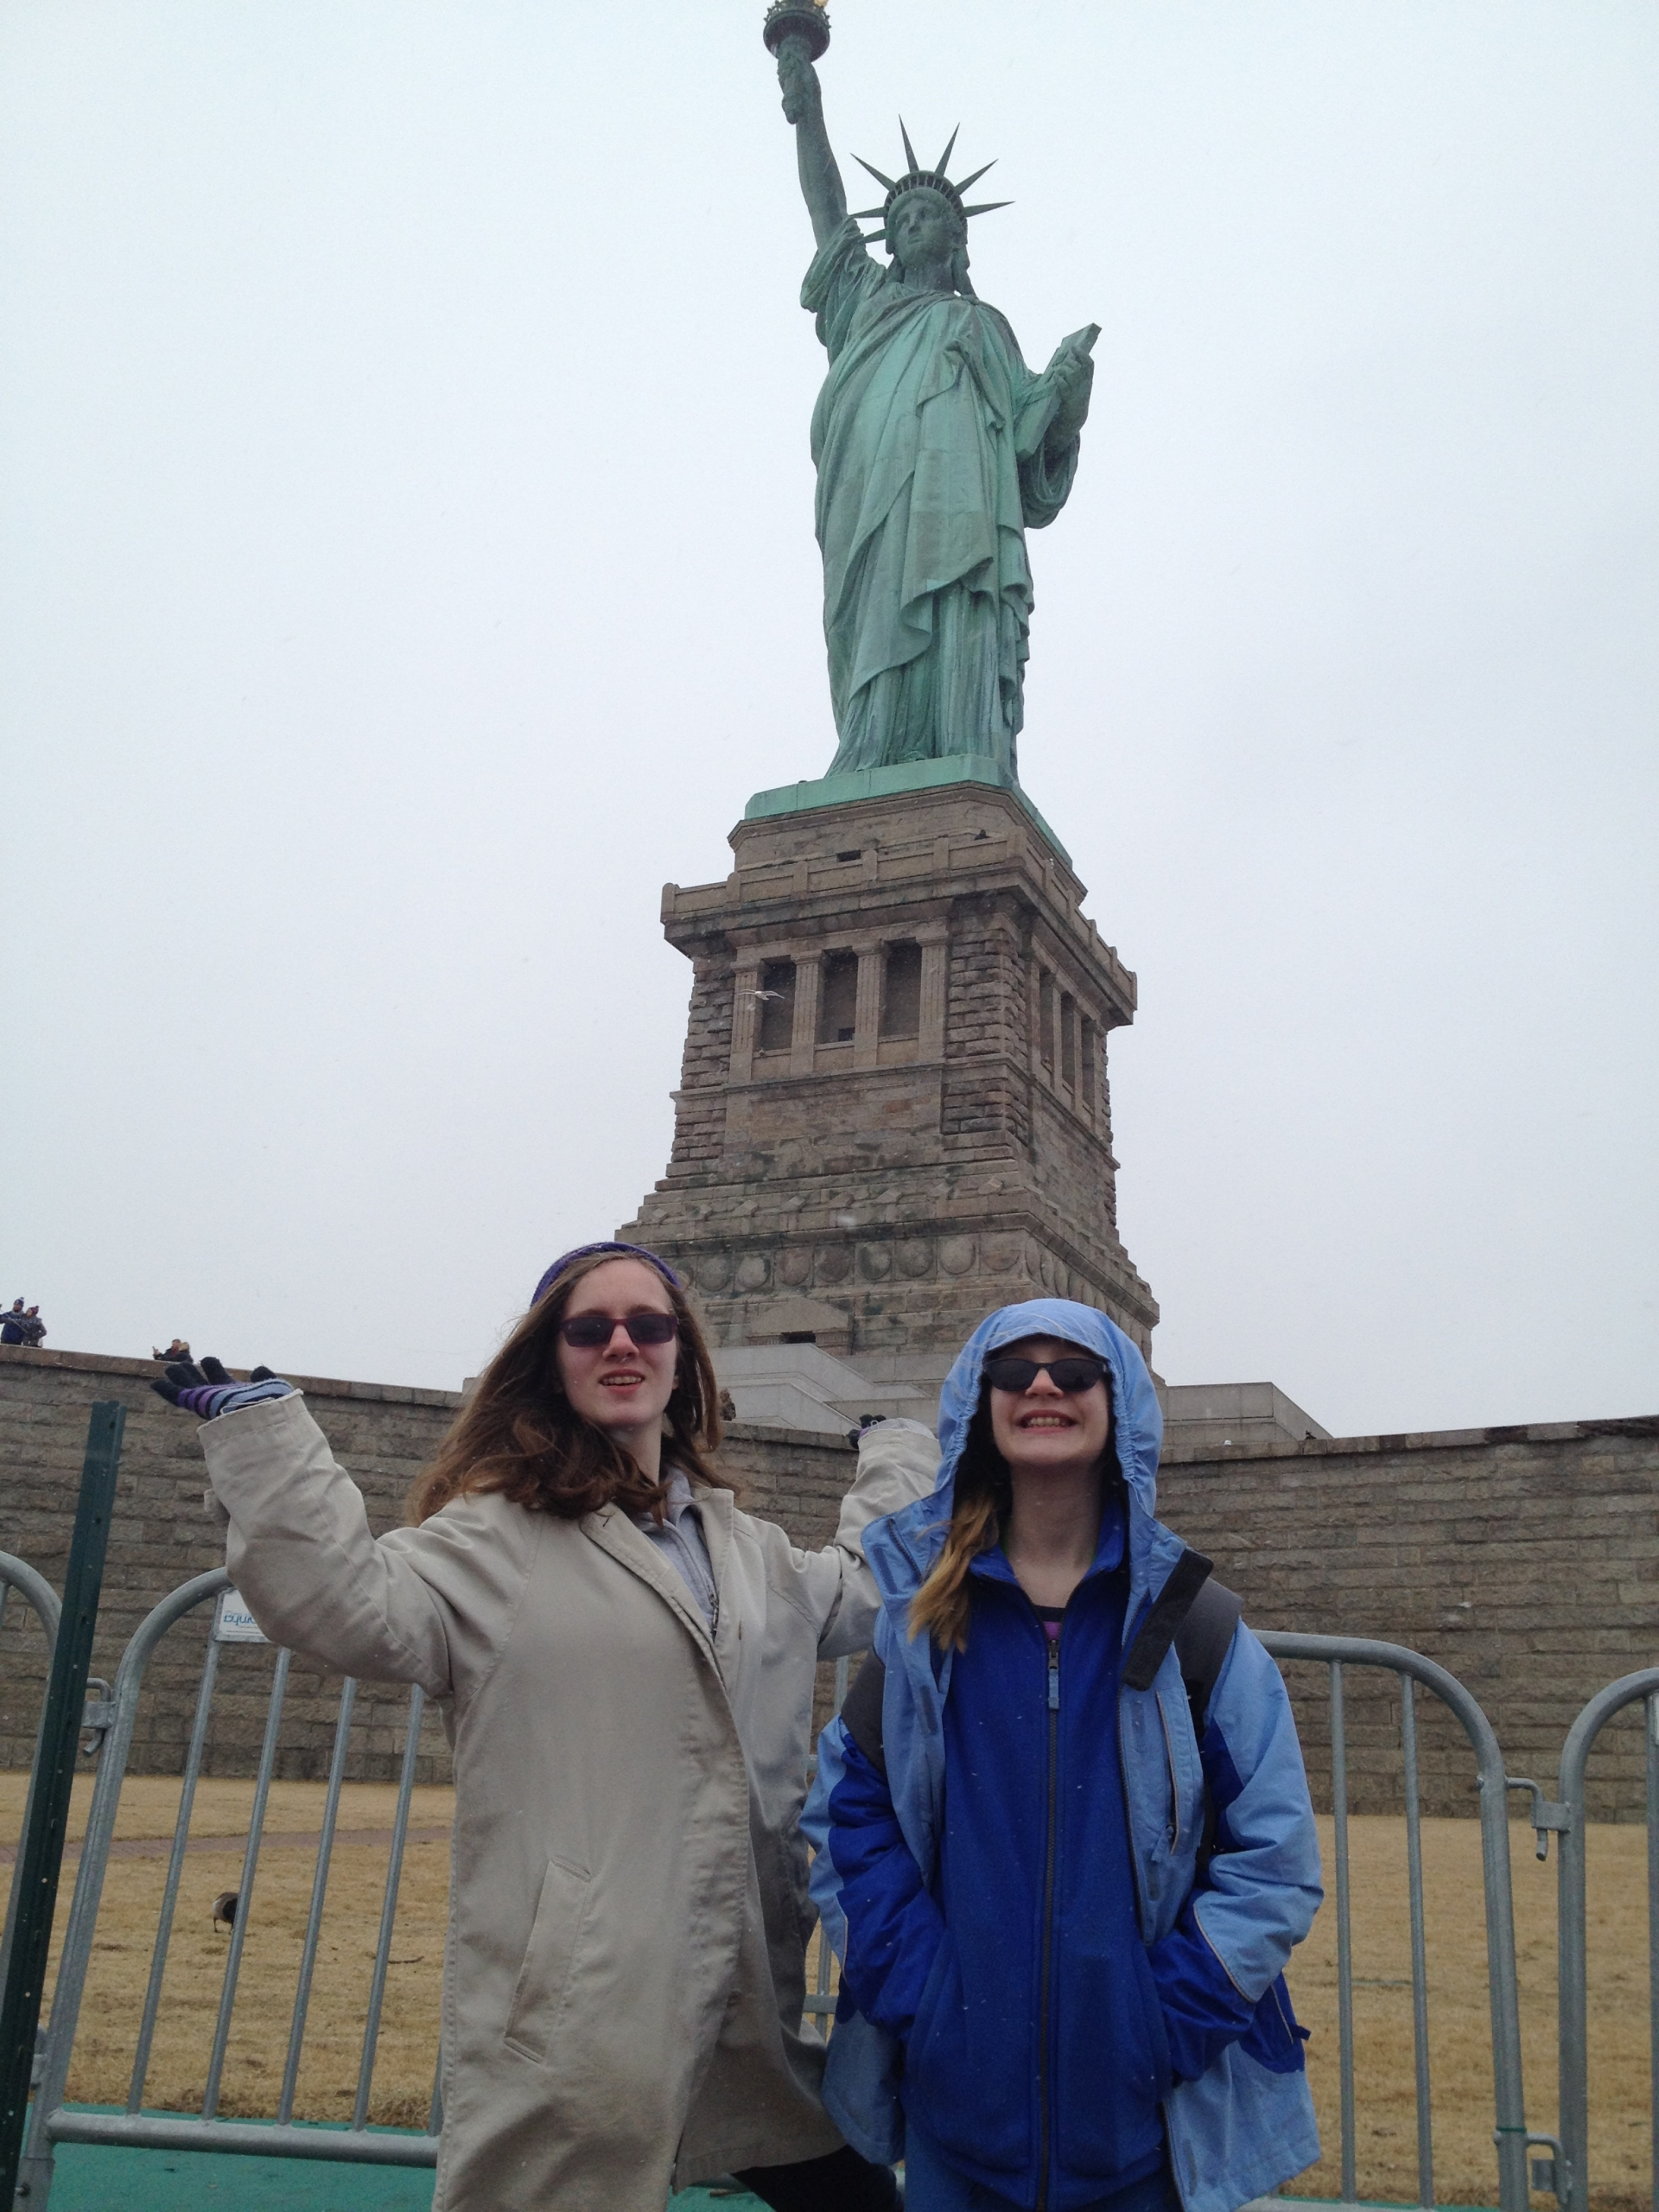 Two girls in coats standing in front of the statue of liberty in New York.